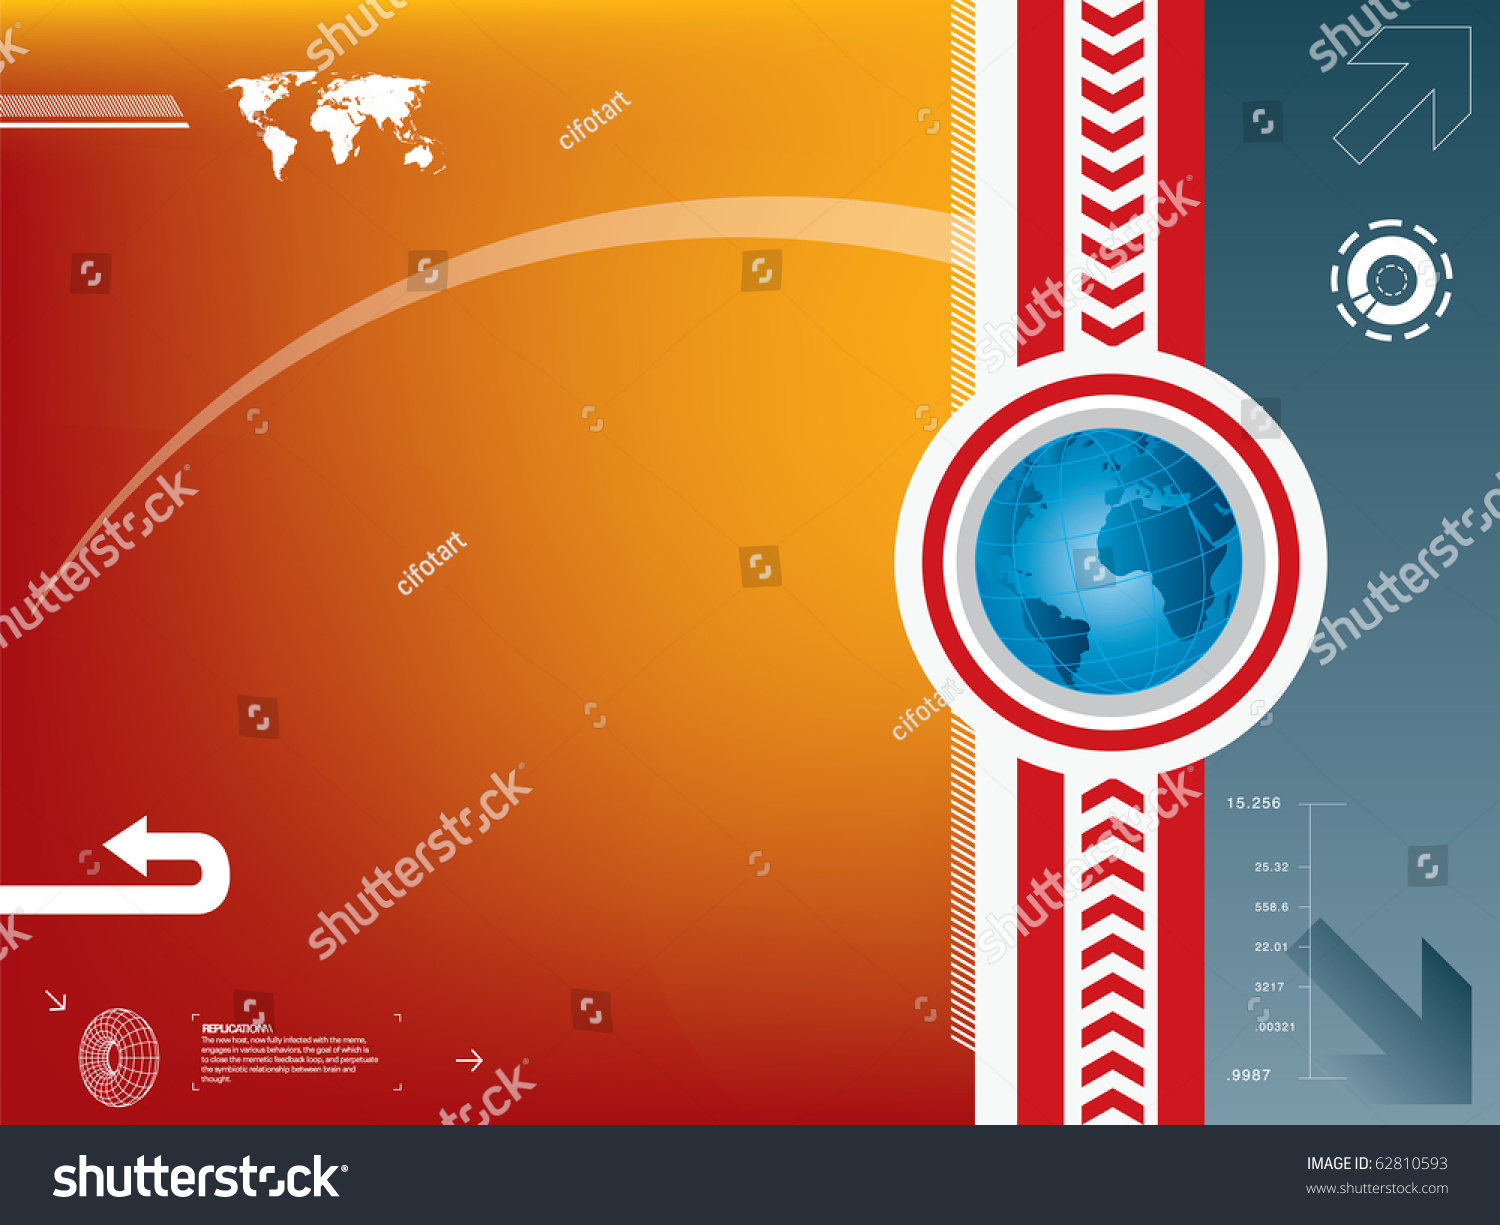 Vector illustration world map globe background stock vector 62810593 vector illustration with world map and globe in background color gumiabroncs Choice Image